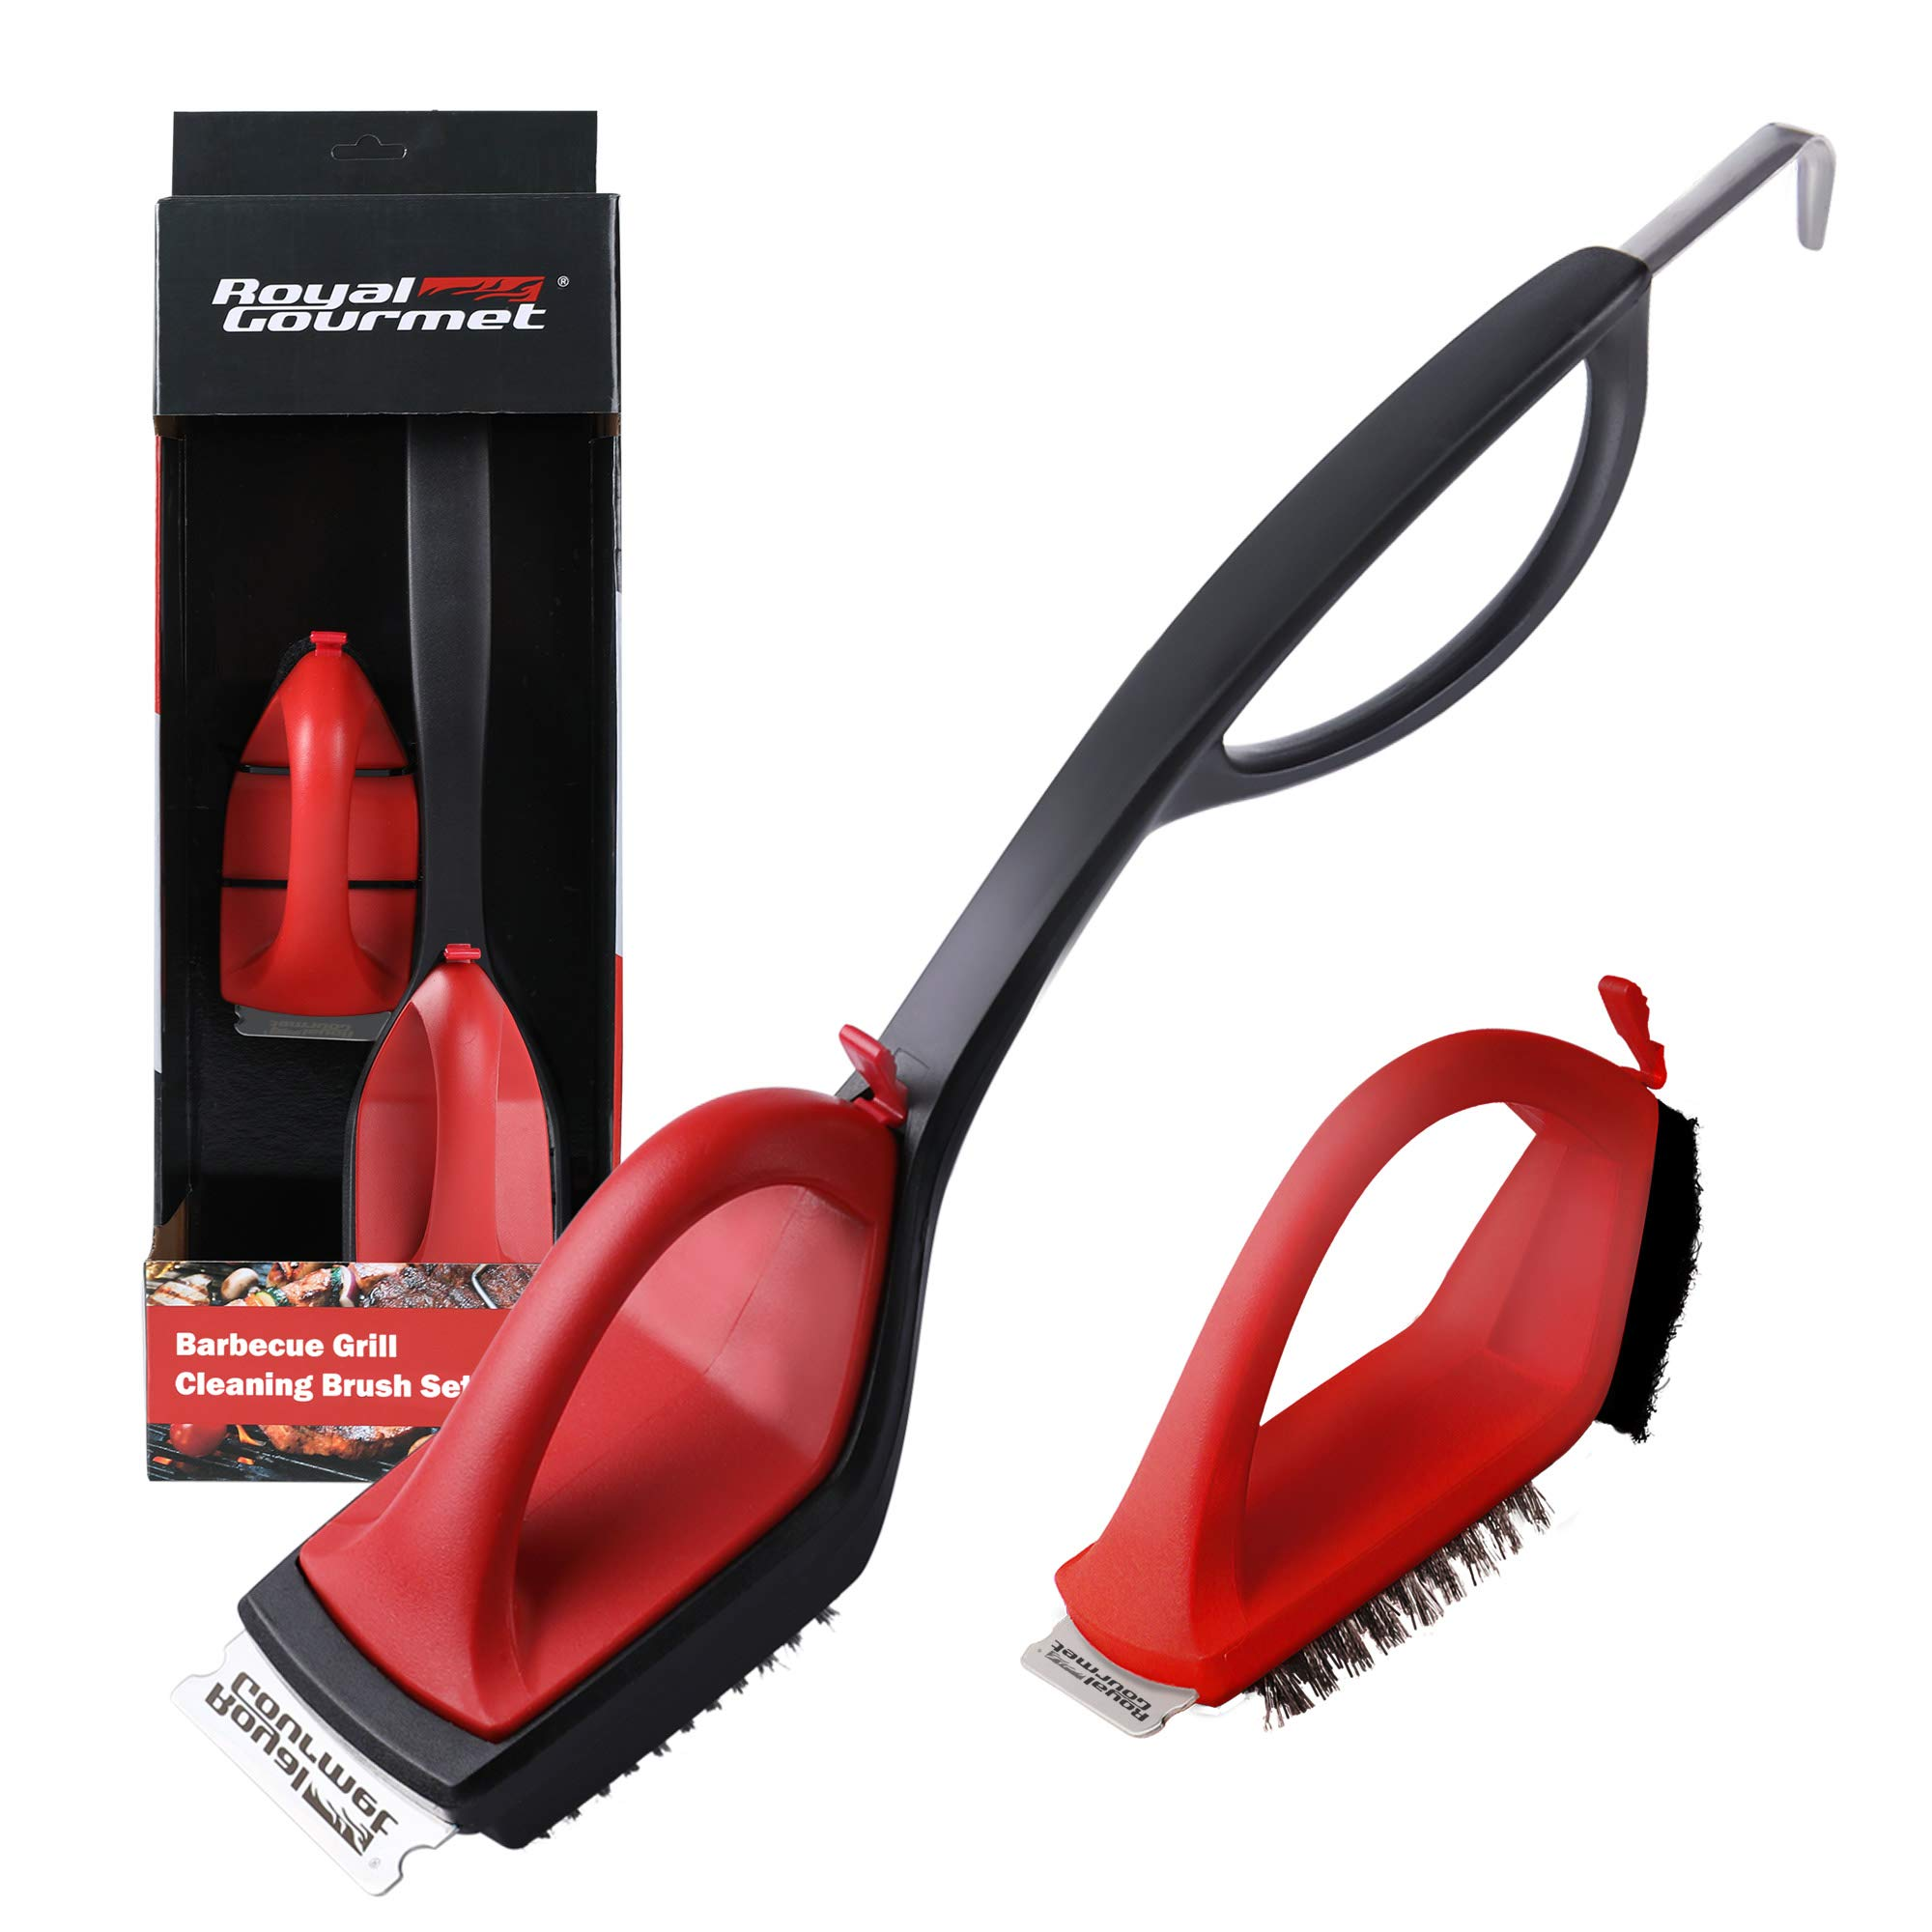 Royal Gourmet TB1806 Grill Cleaning Brush Set, 18-Inch BBQ Wire Bristle Brush and Scraper with Extra Replacement Head for Gas/Charcoal Grills Grates, Perfect Cleaning Accessory, Red